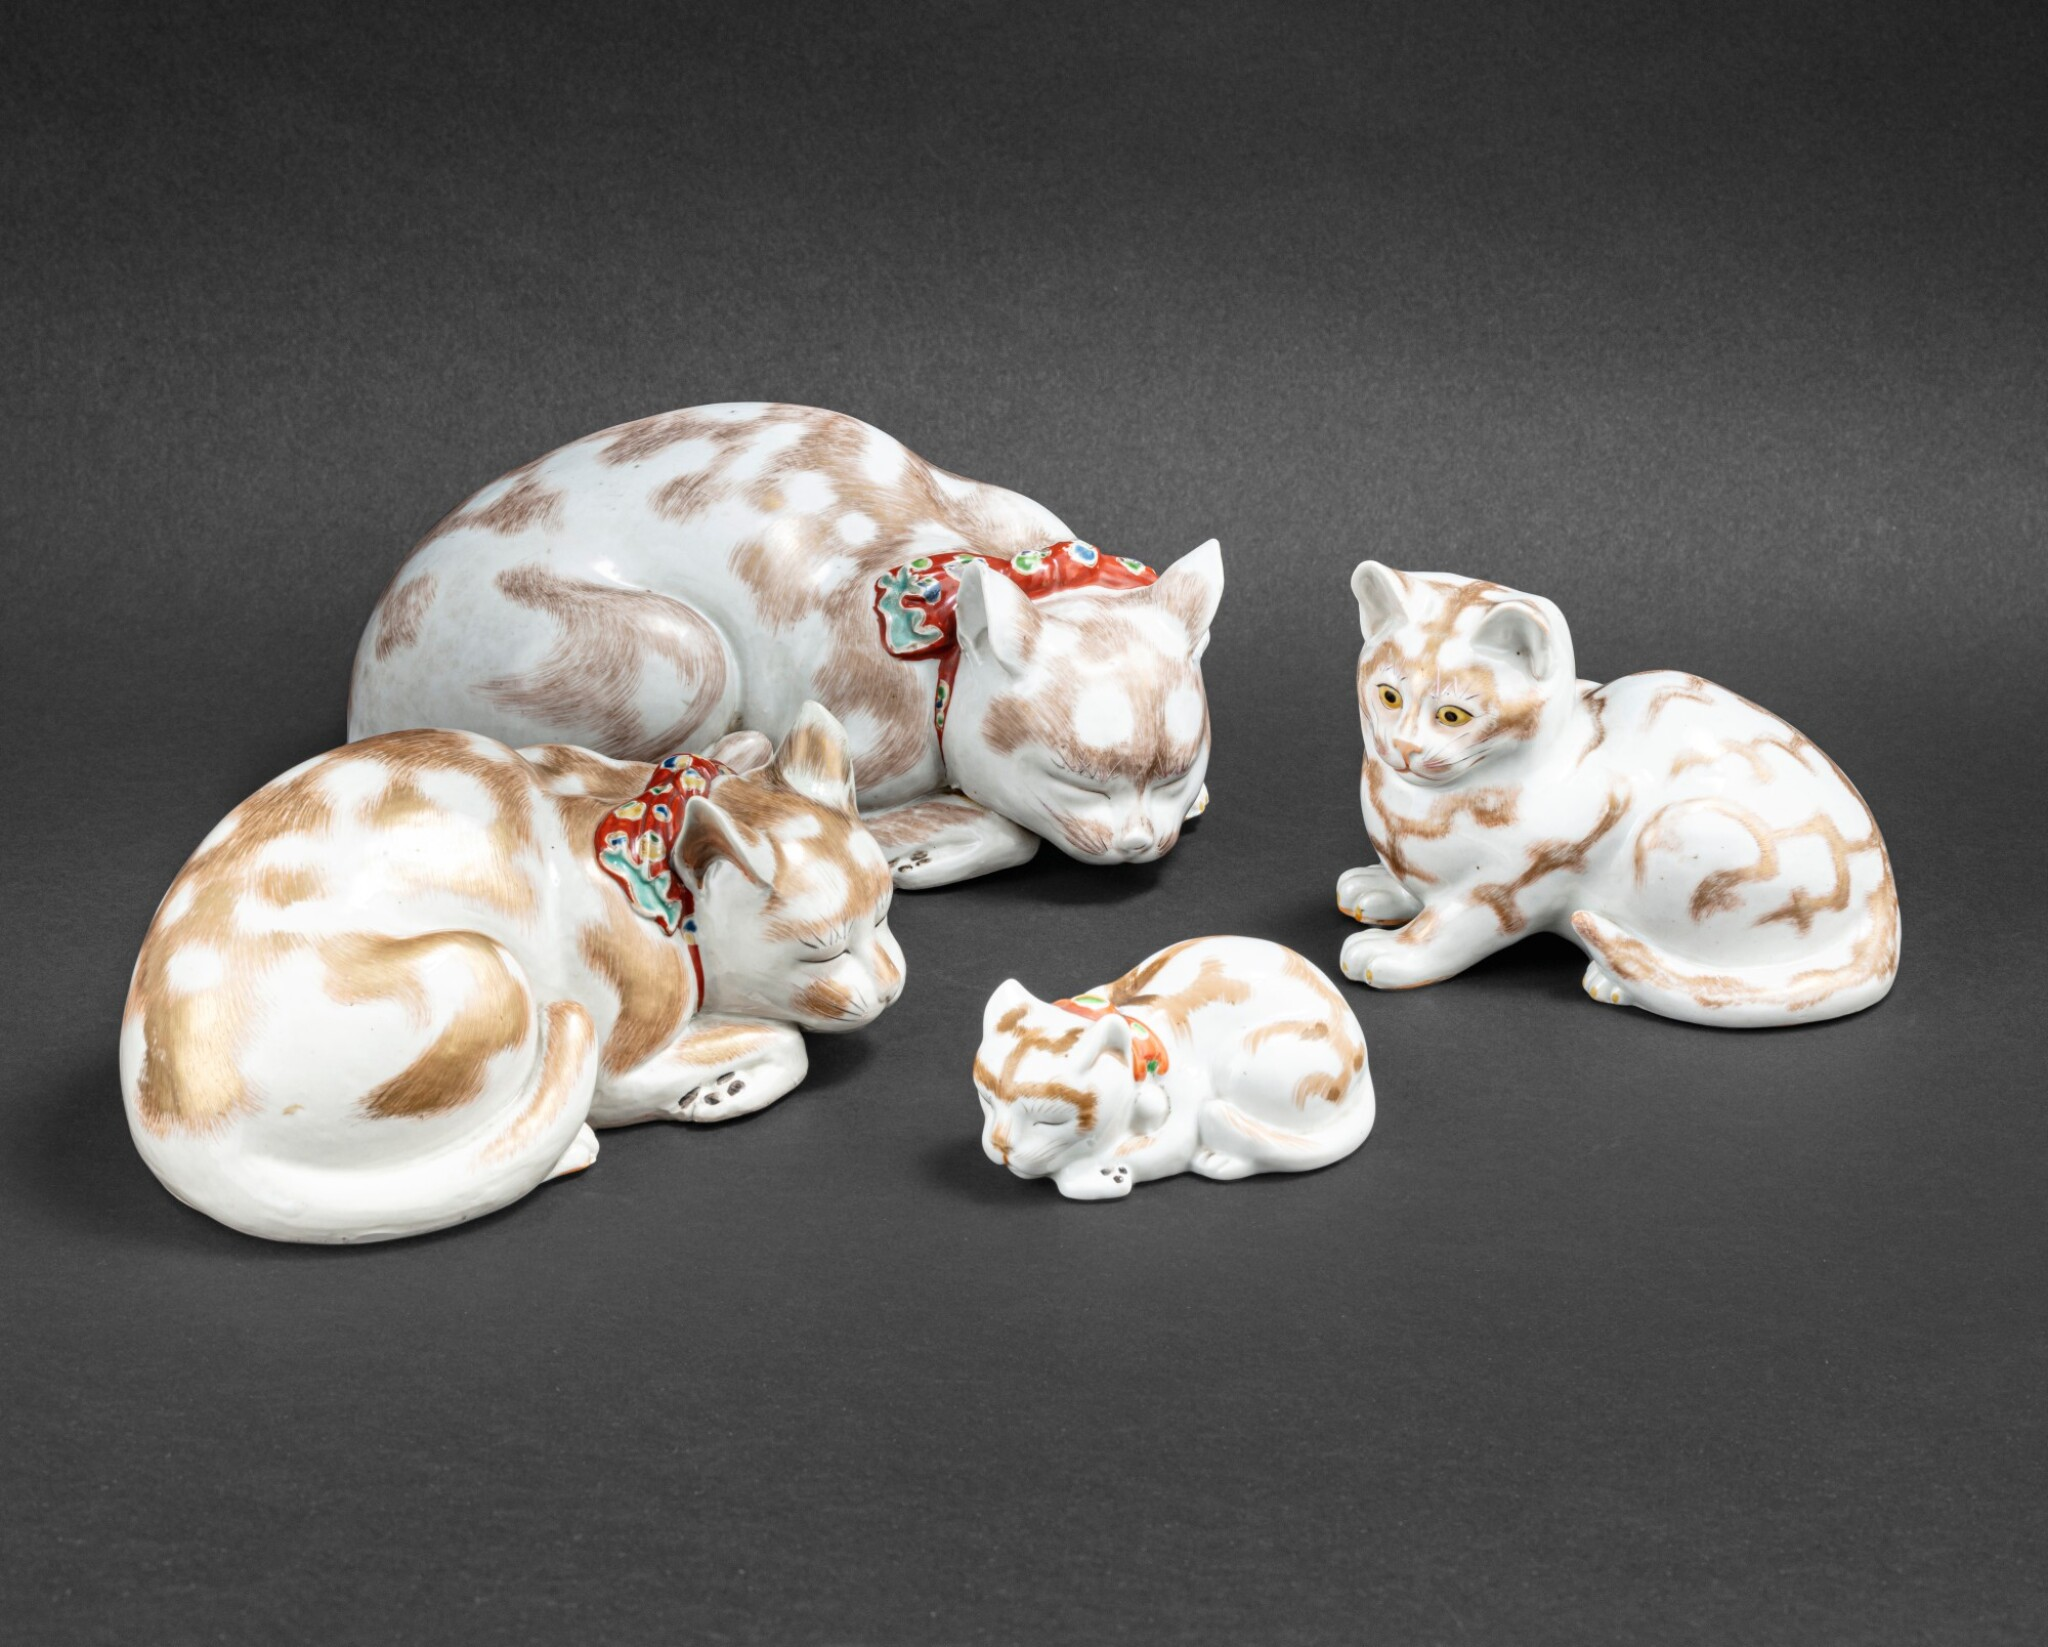 View 1 of Lot 255. Ensemble de six statuettes de chats en porcelaine de kutani Japon, époque Meiji et postérieure | 日本 明治時期及更晩期 九谷燒貓一組六件 | A group of six Kutani models of cats, Japan, Meiji period and later.